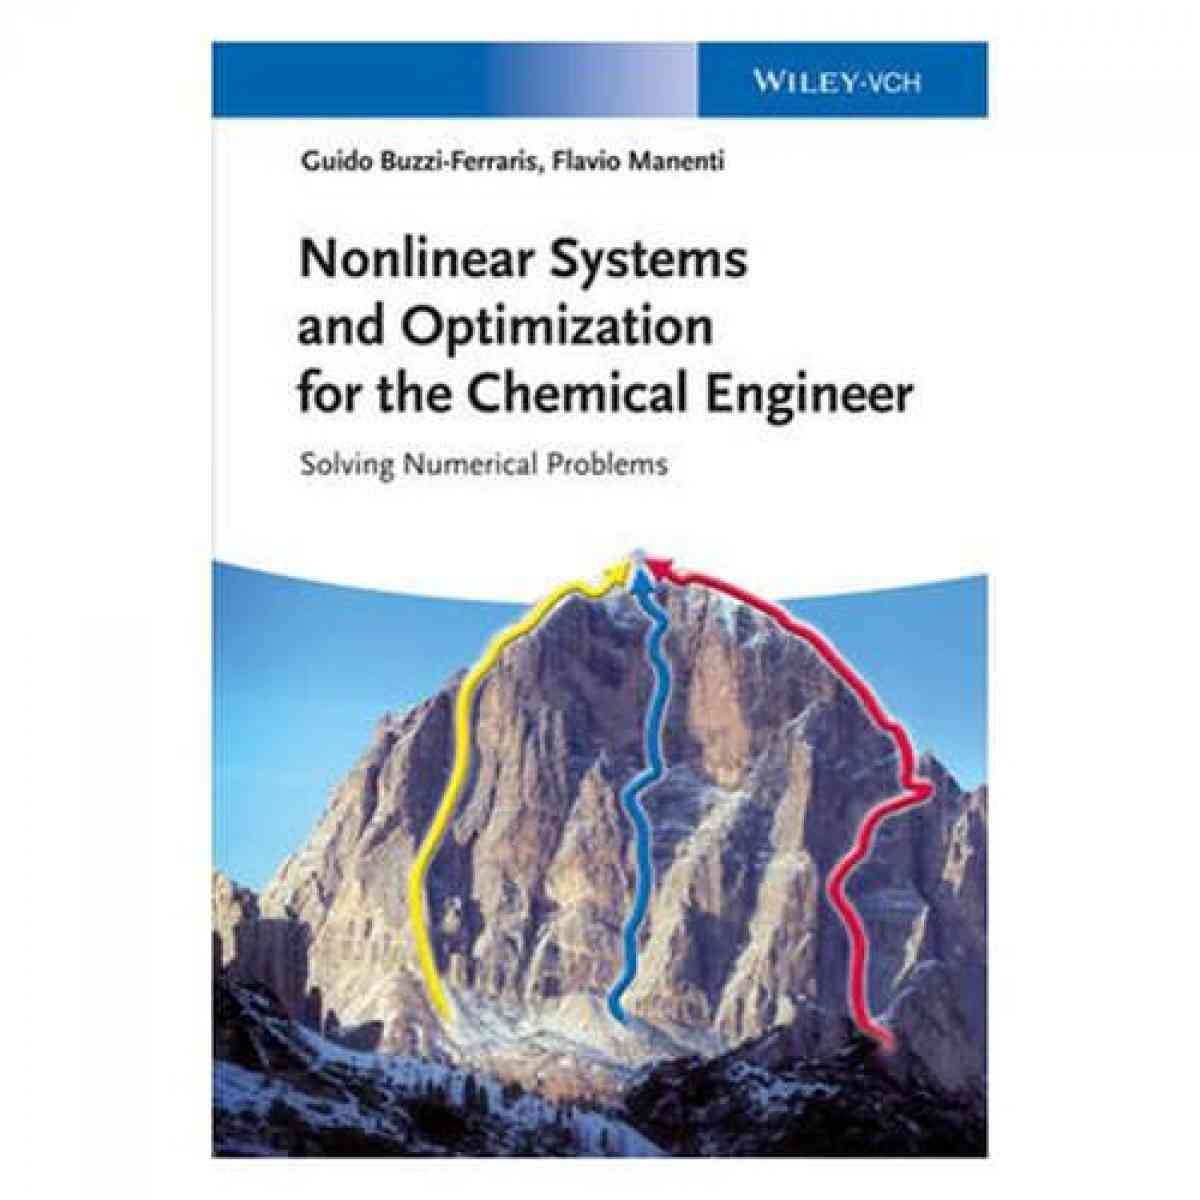 Paramount Nonlinear Systems And Optimization For The Chemical Engineer 2014